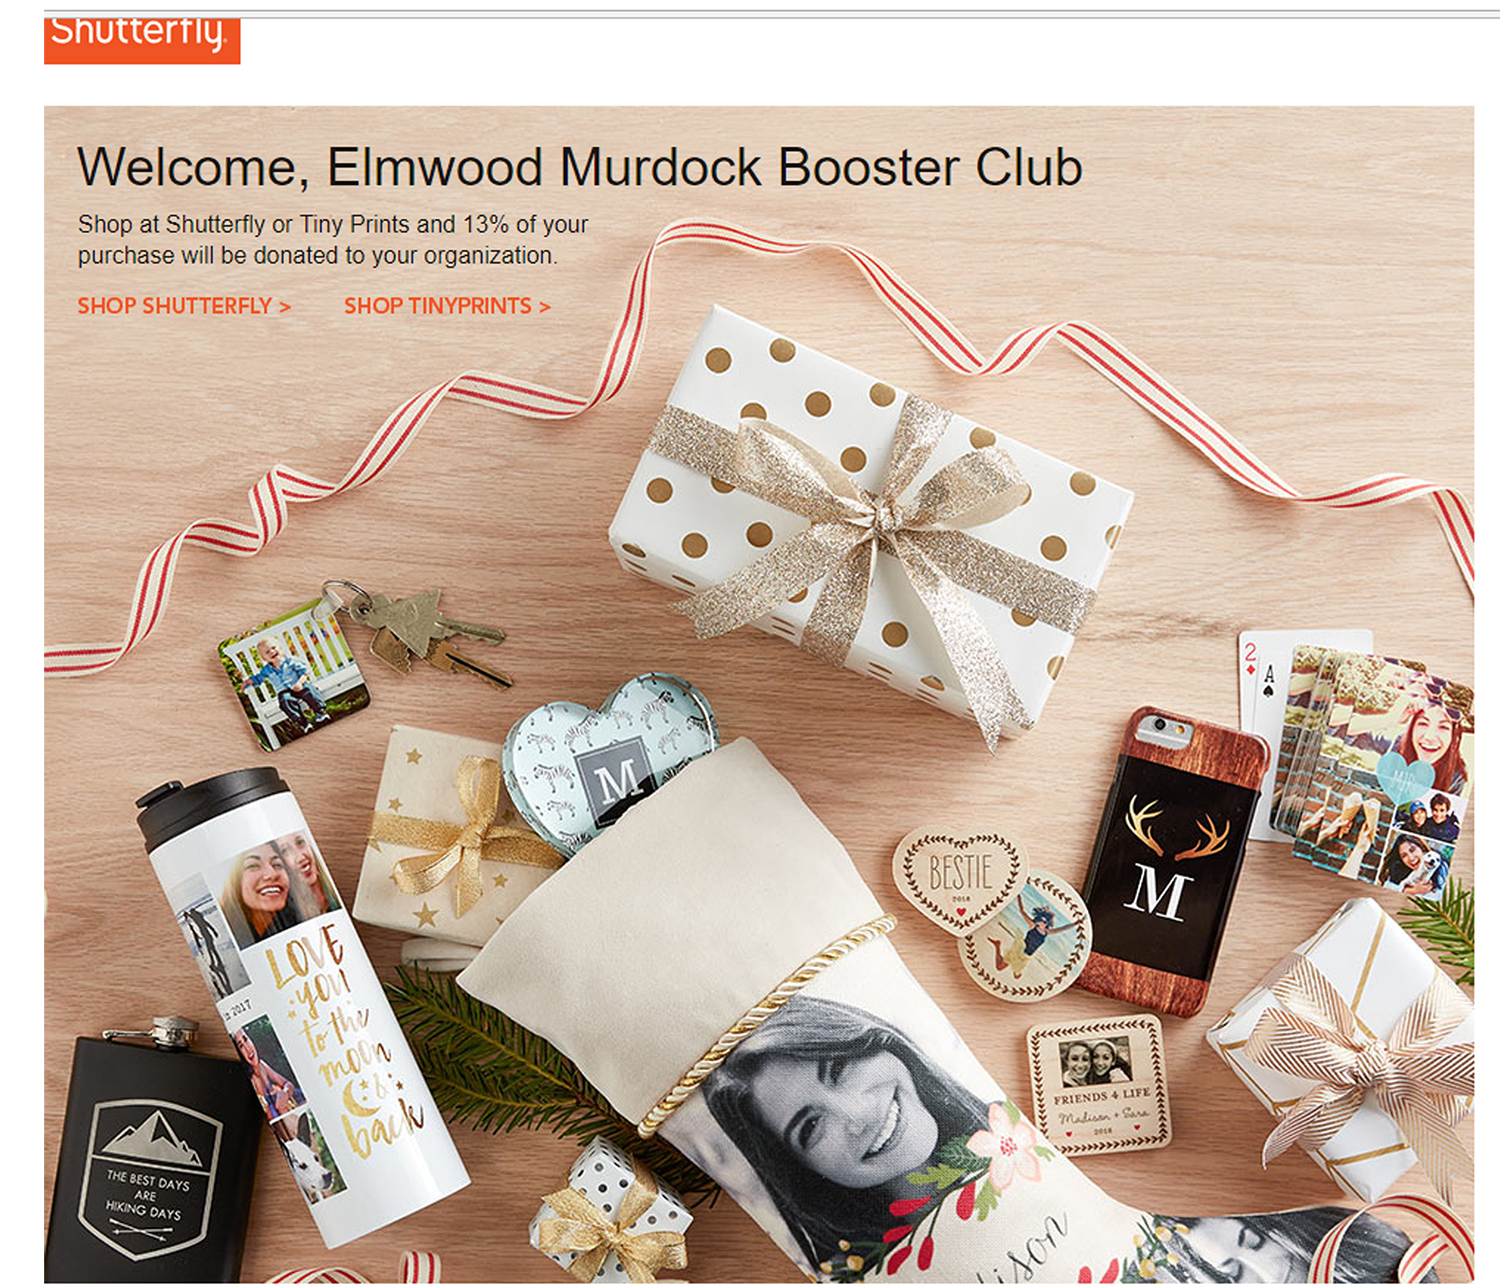 Shutterfly shopping page image